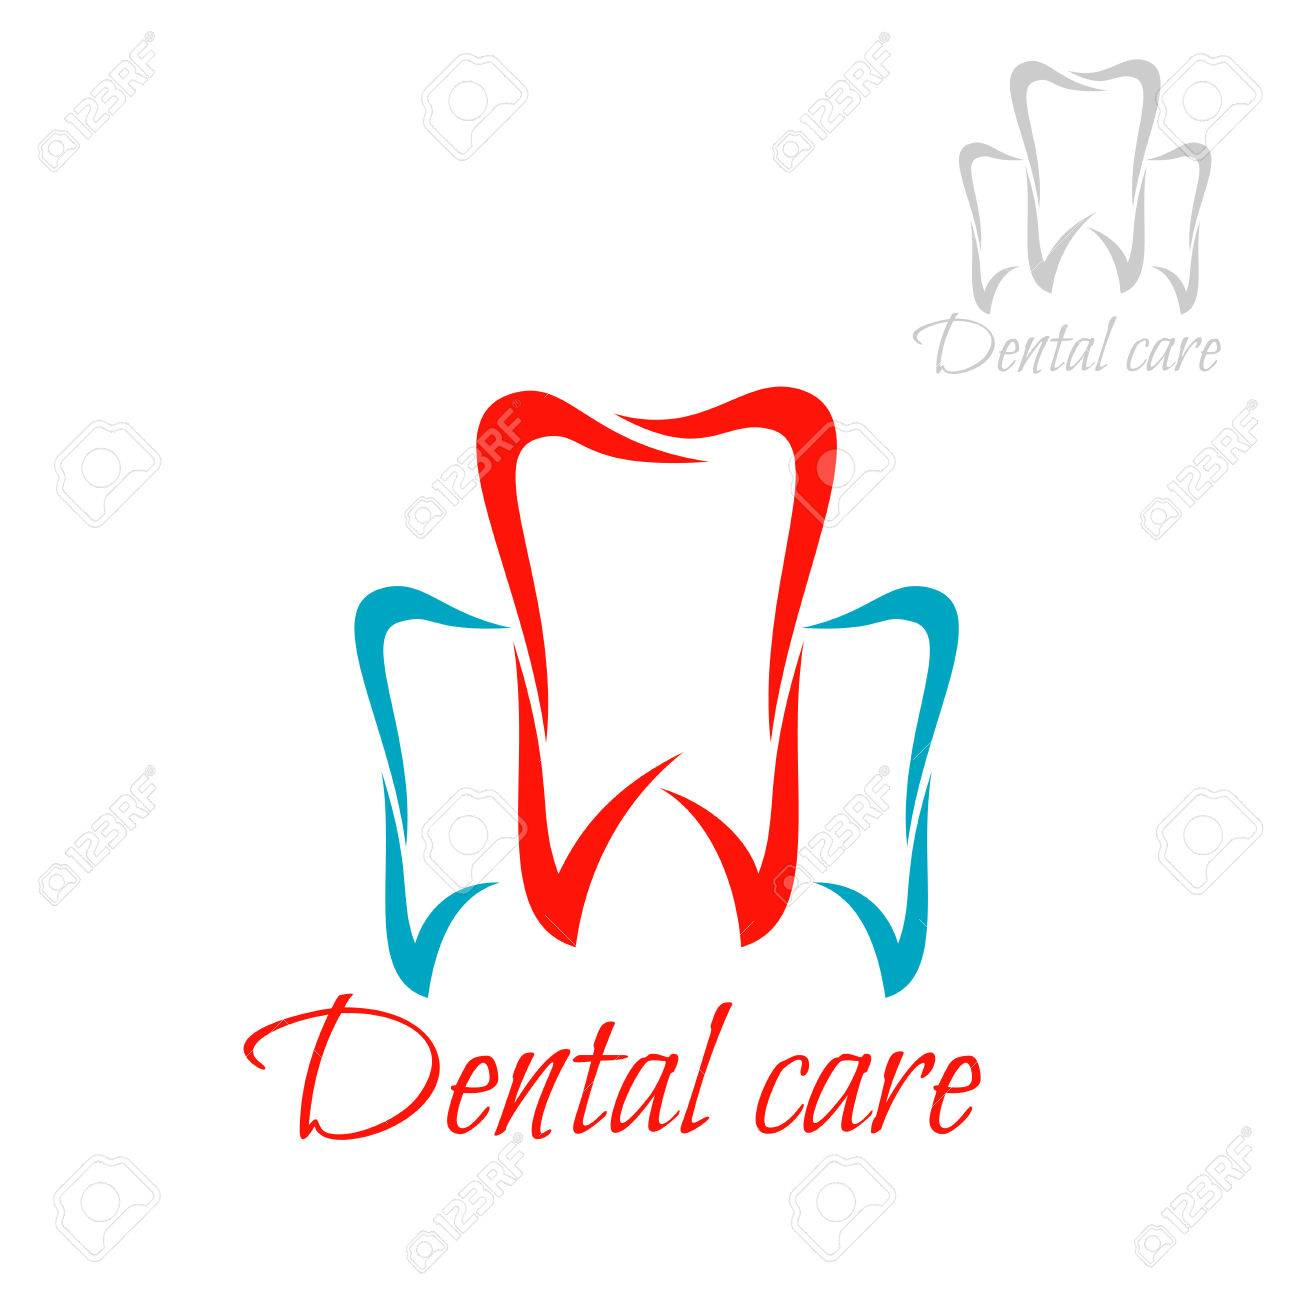 Dentistry Emblem And Tooth Icon Vector Isolated Teeth Symbols